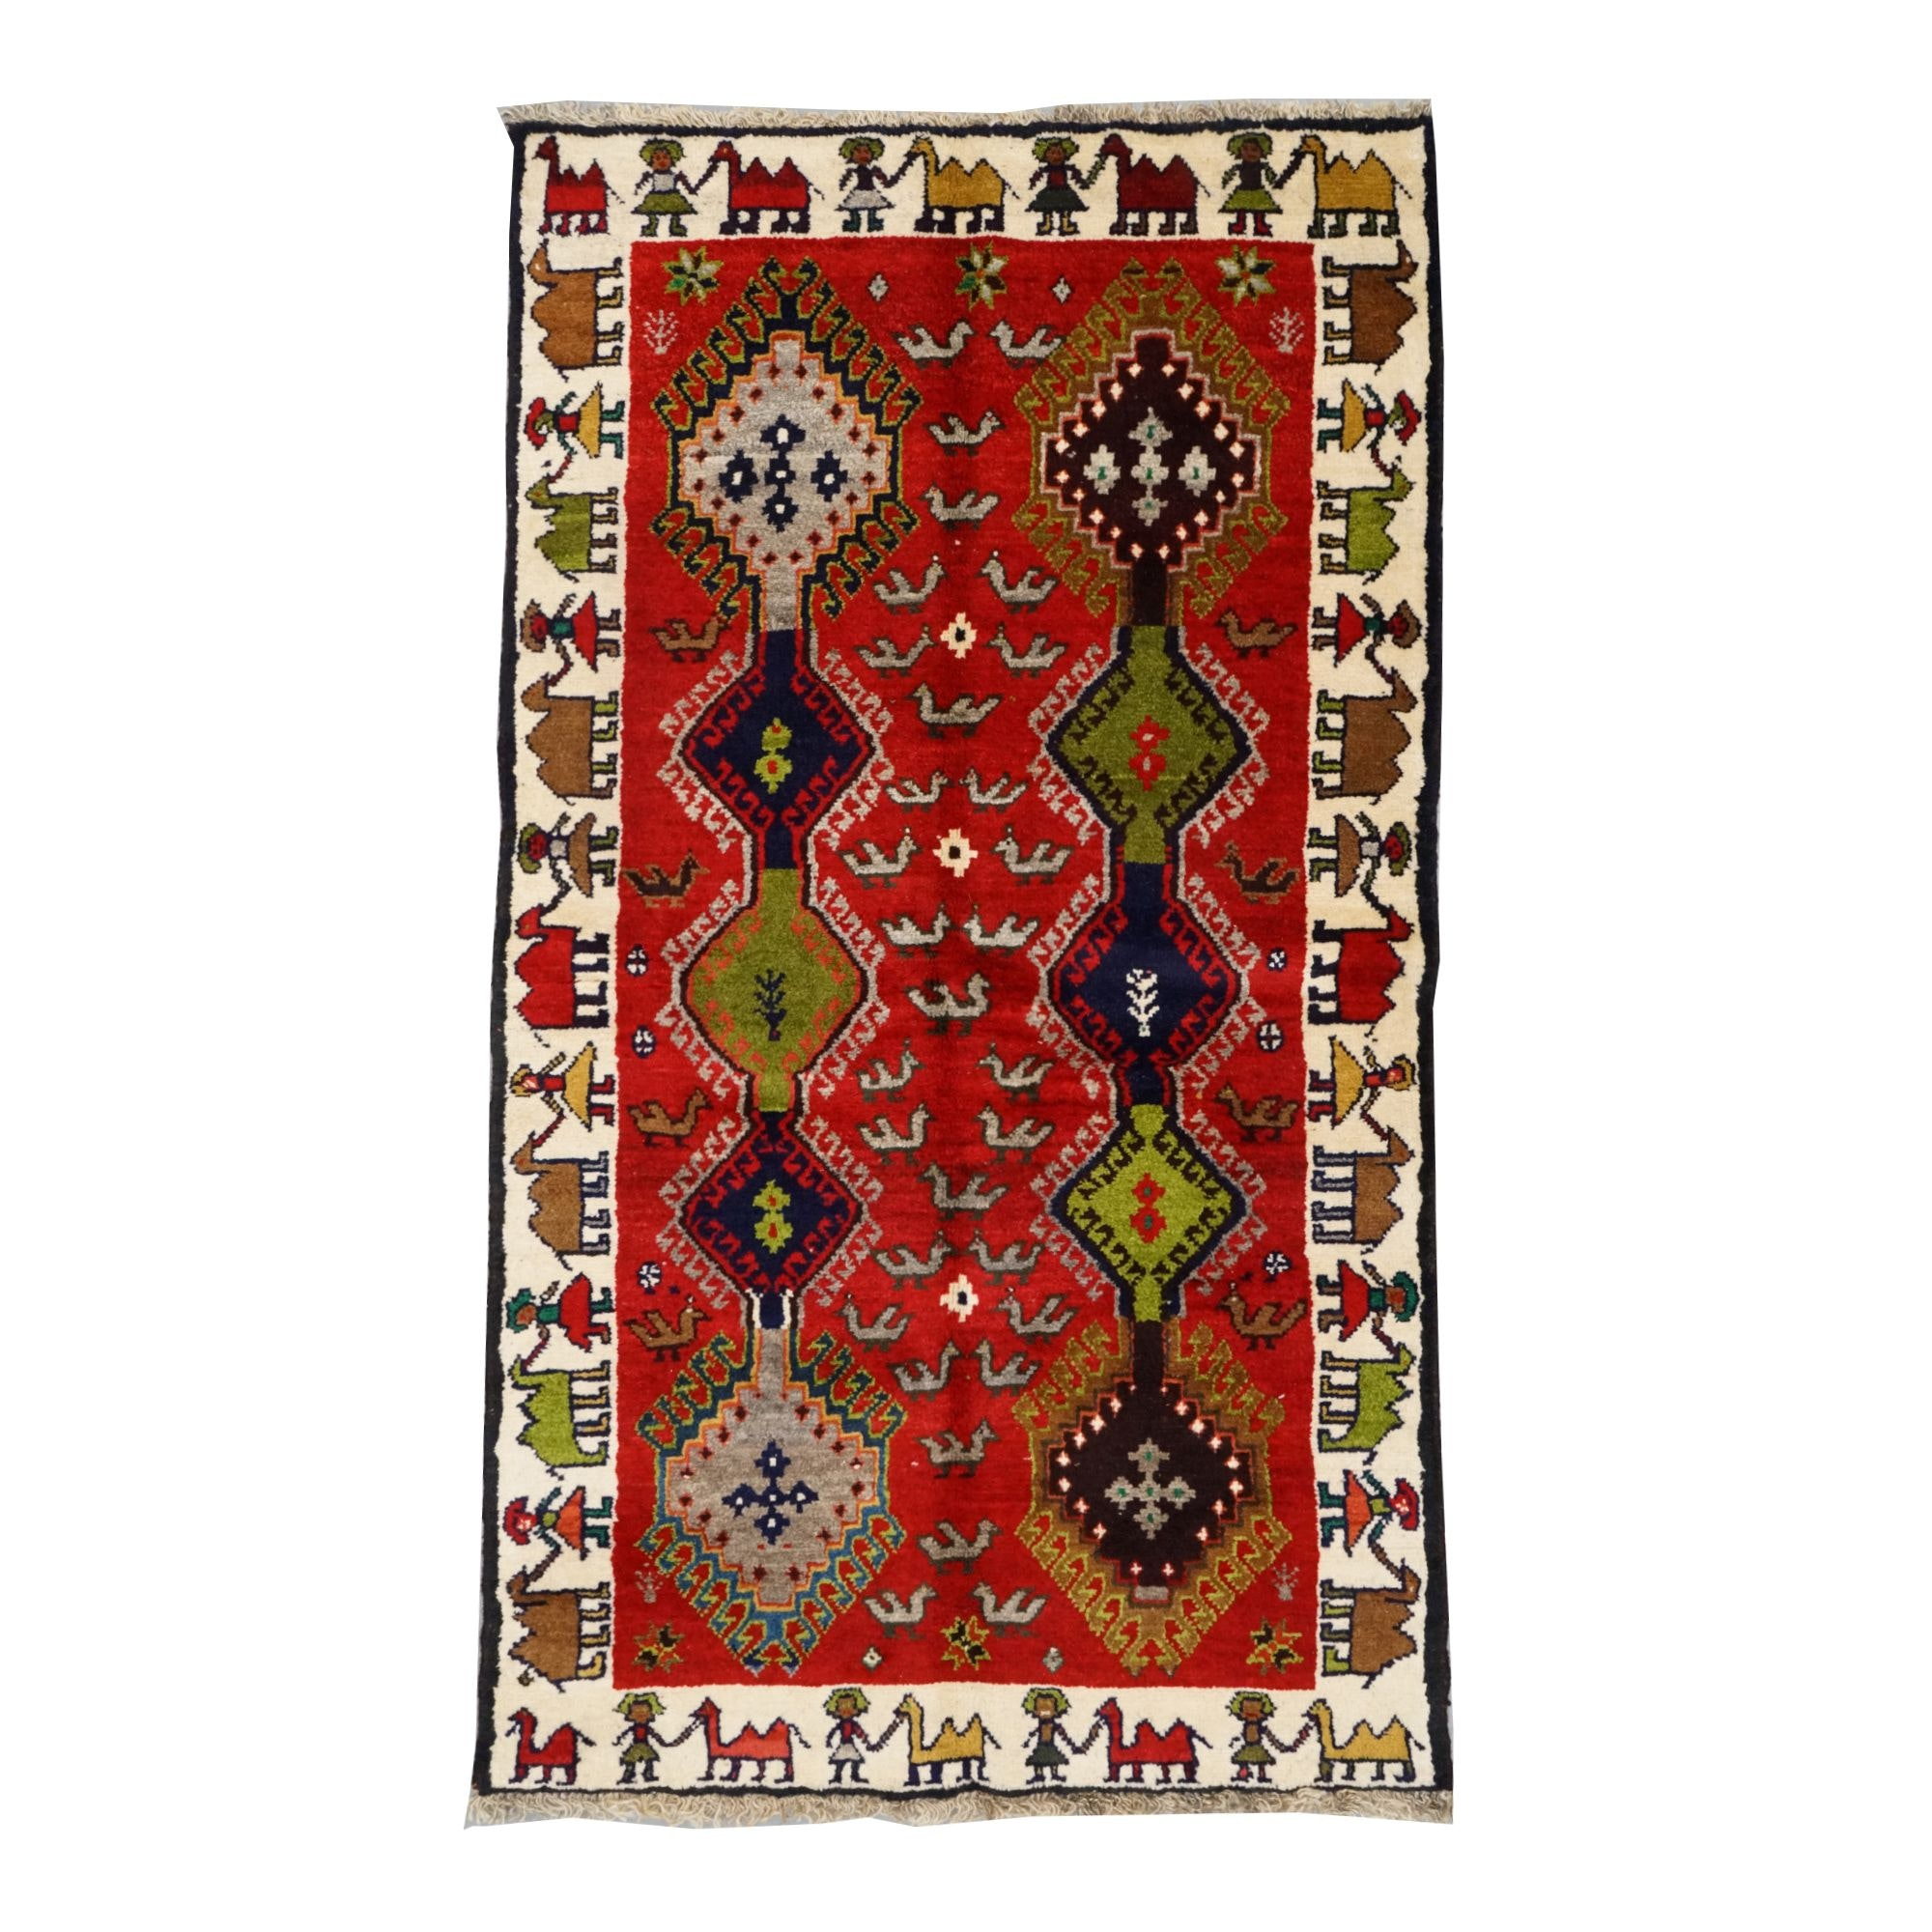 Vintage Hand Knotted Indo-Persian Wool Accent Rug